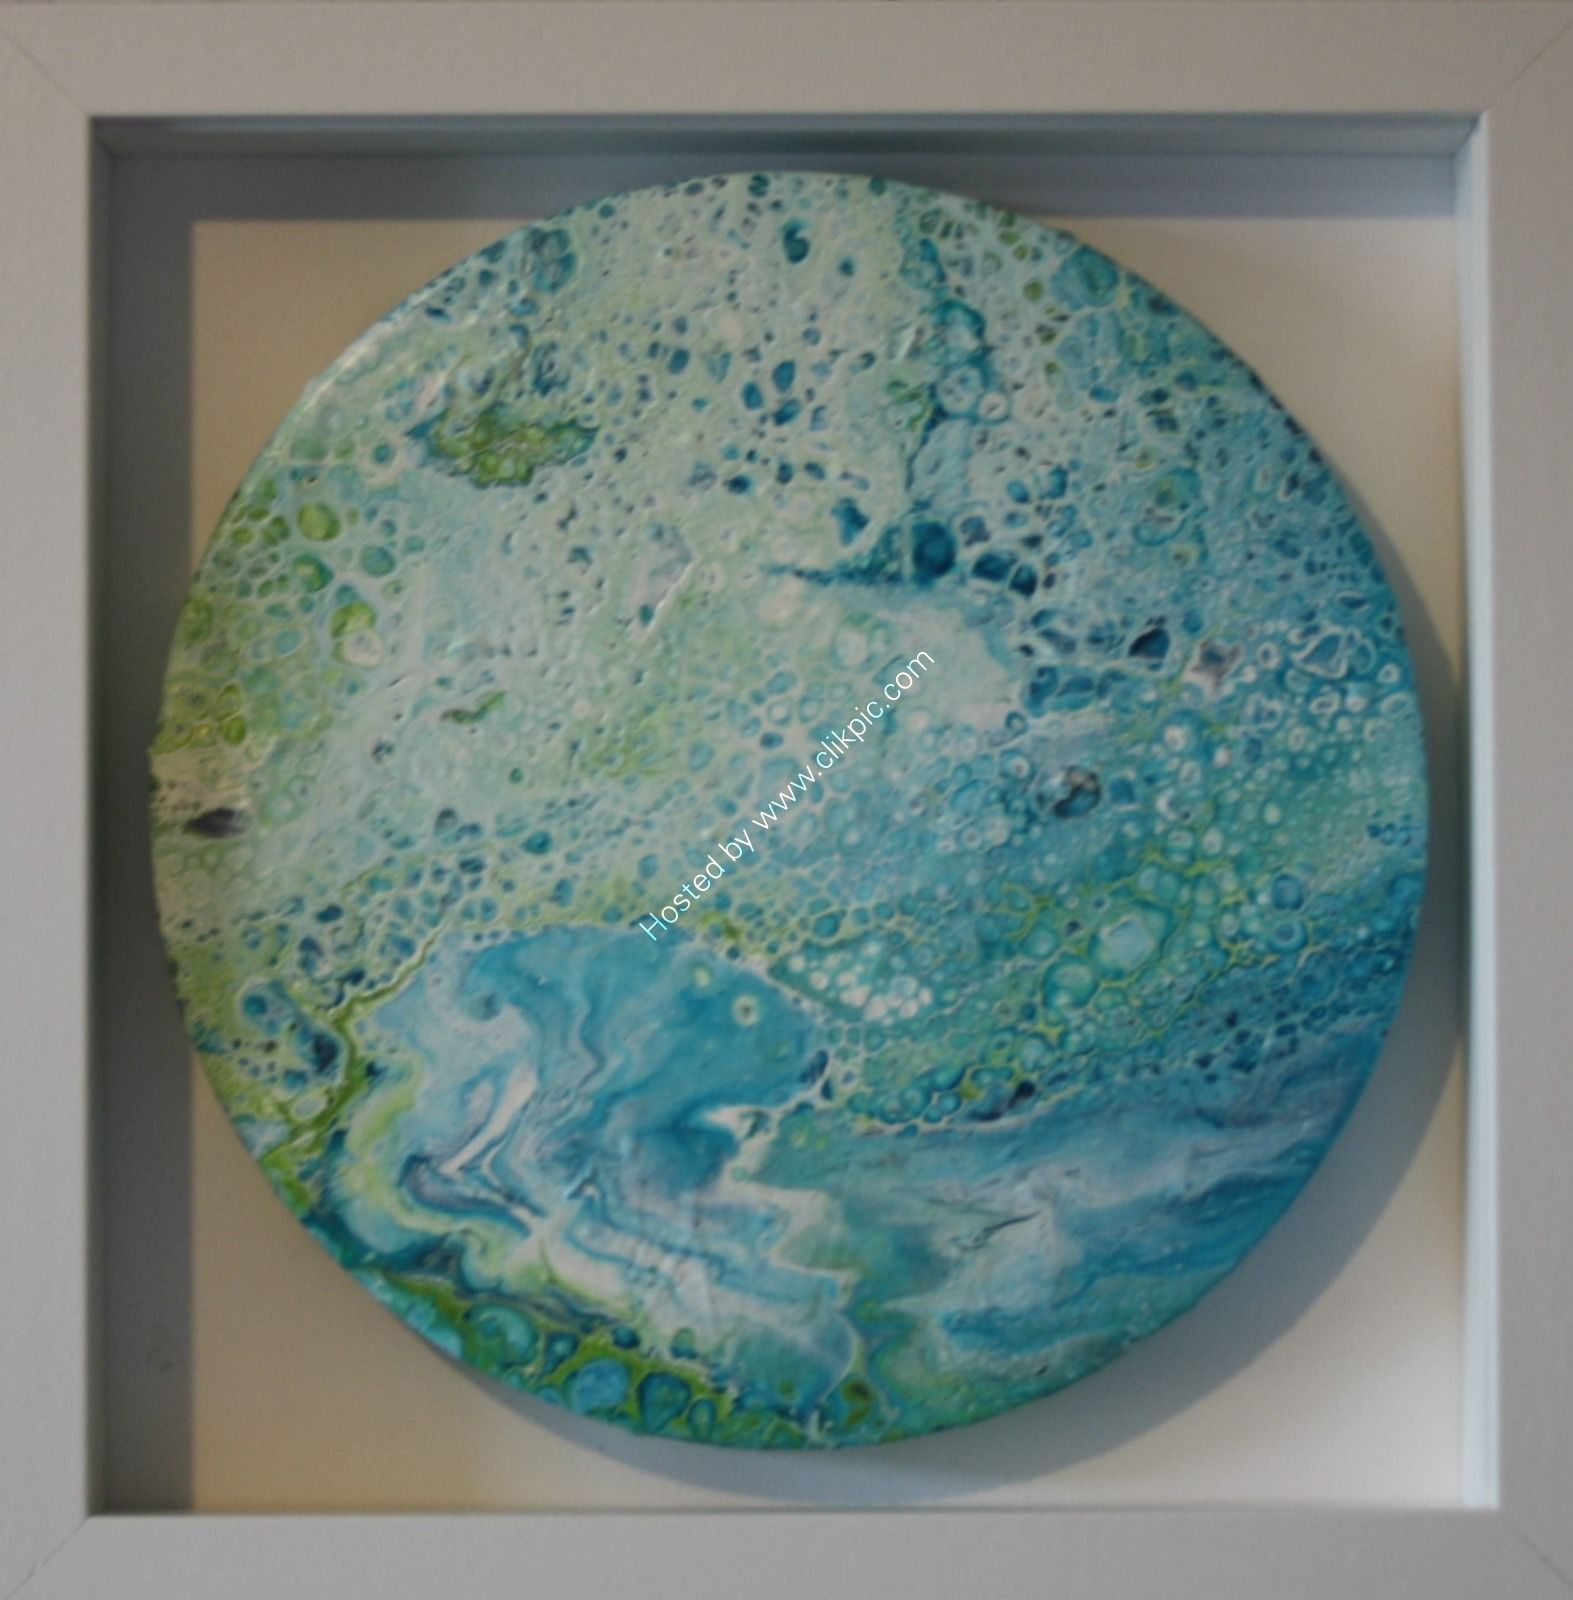 ACRYLIC POURING ON AN 8 INCH ROUND CANVAS (FRAMED)